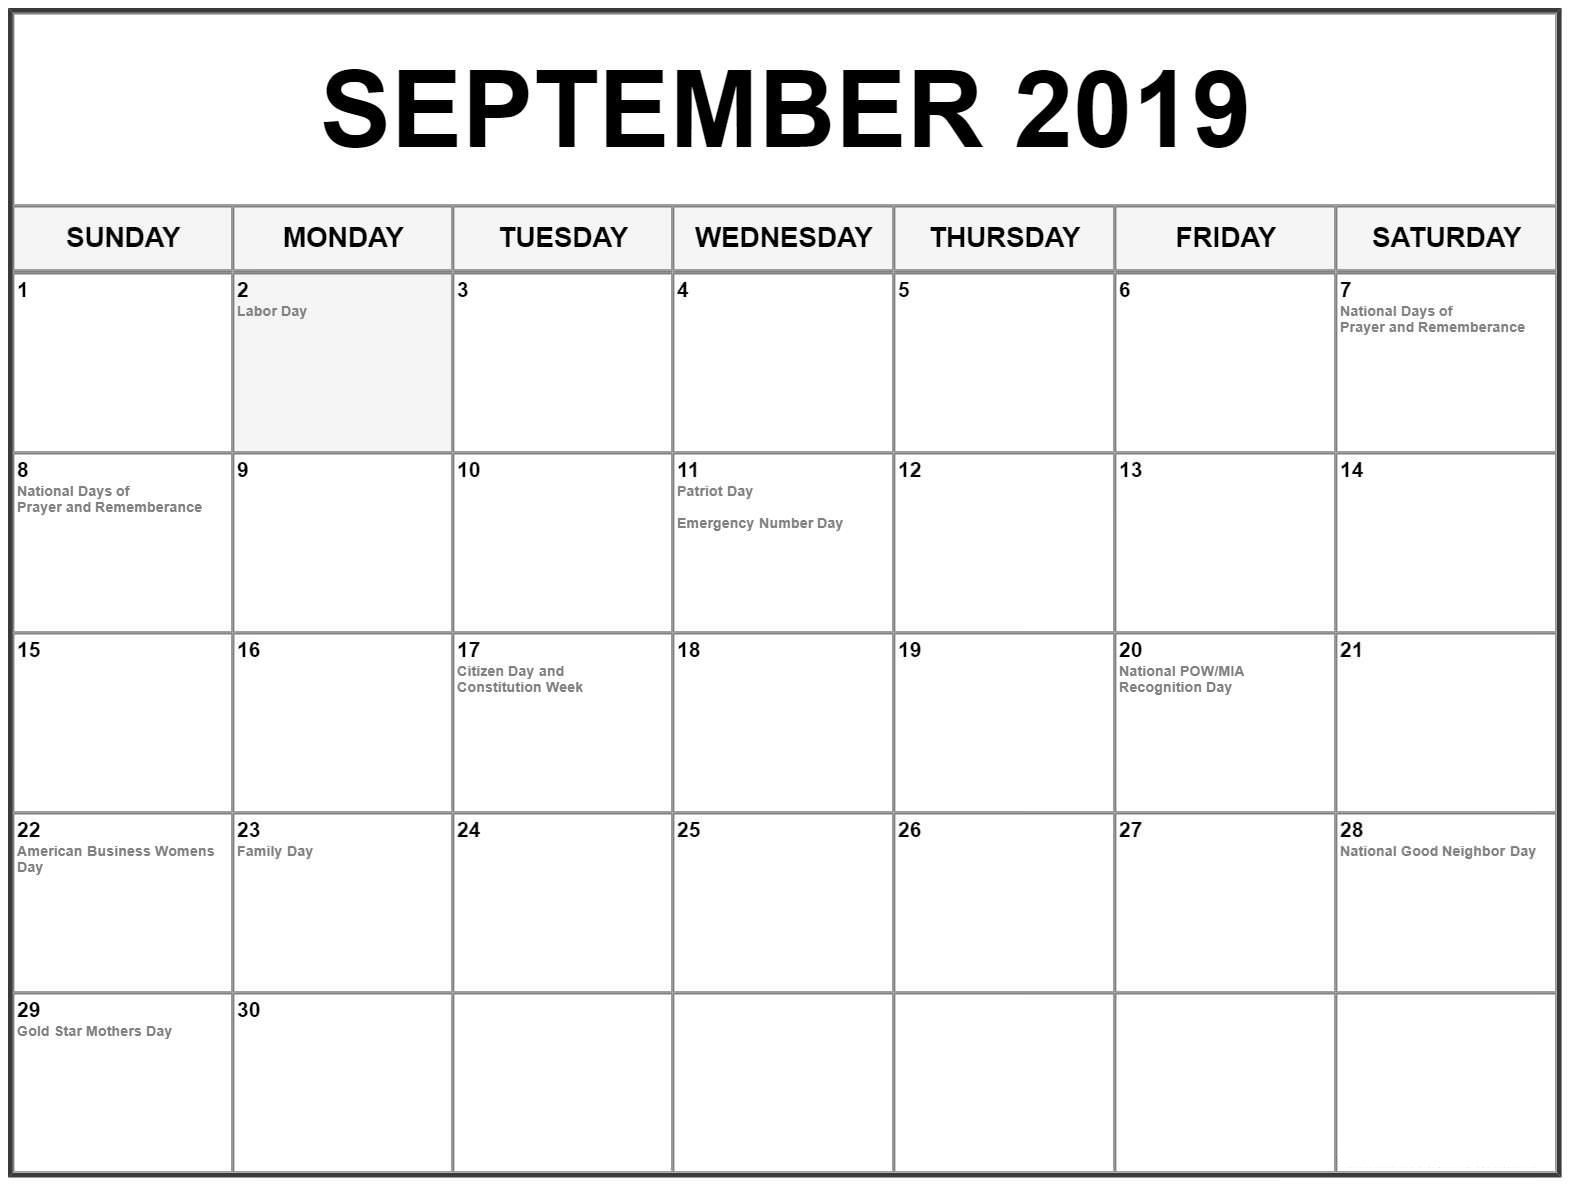 September Holidays 2019